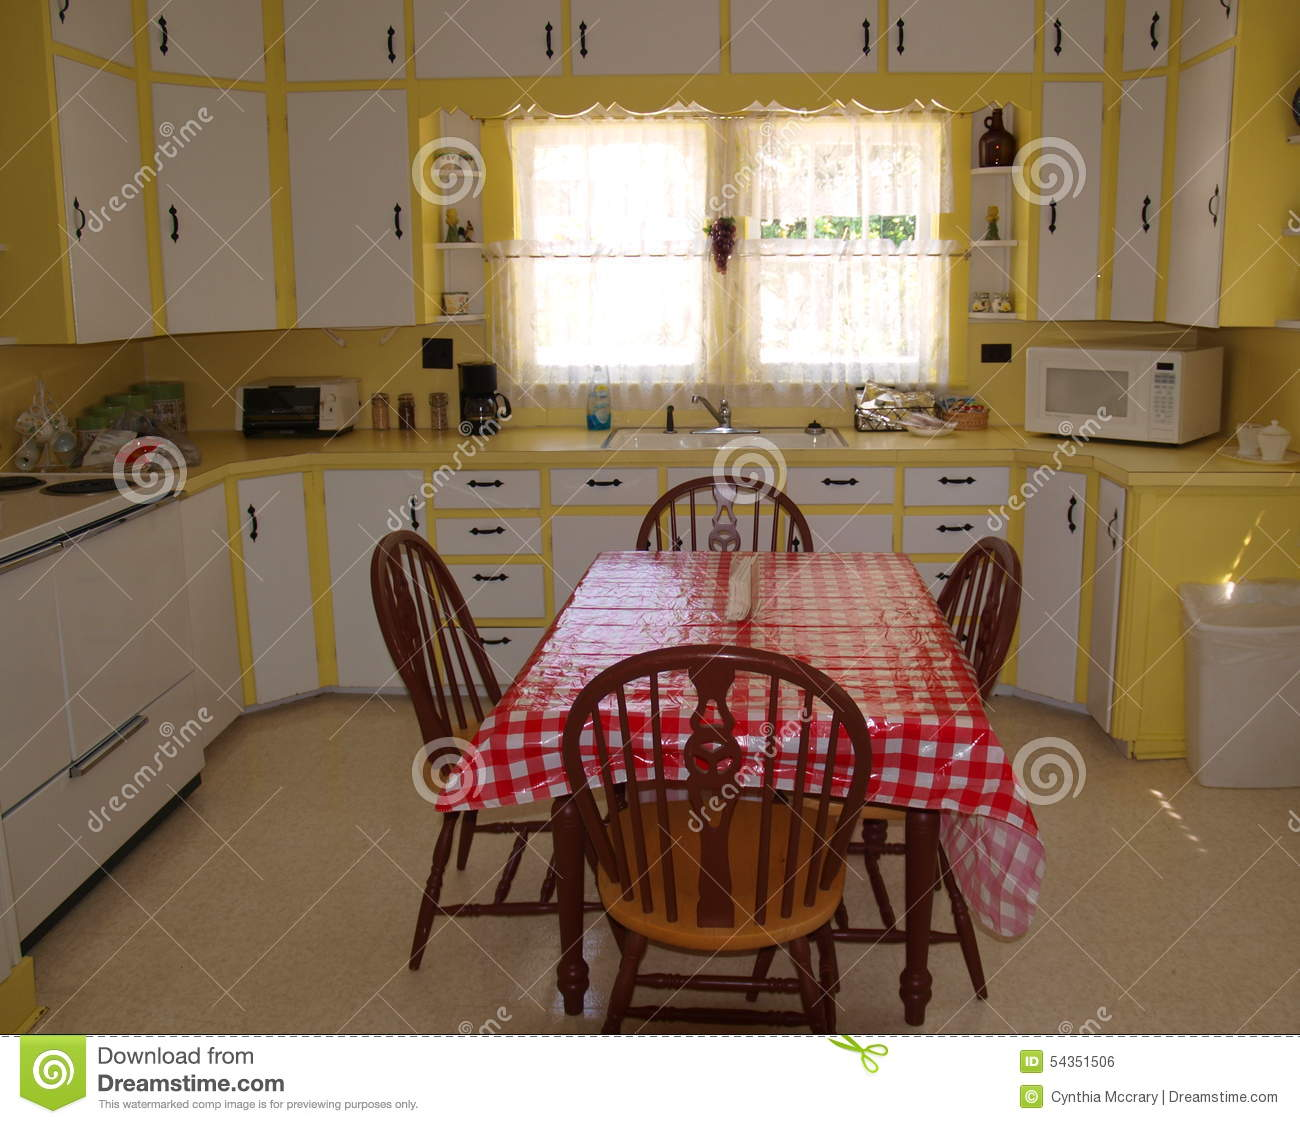 Andy Griffith Kitchen